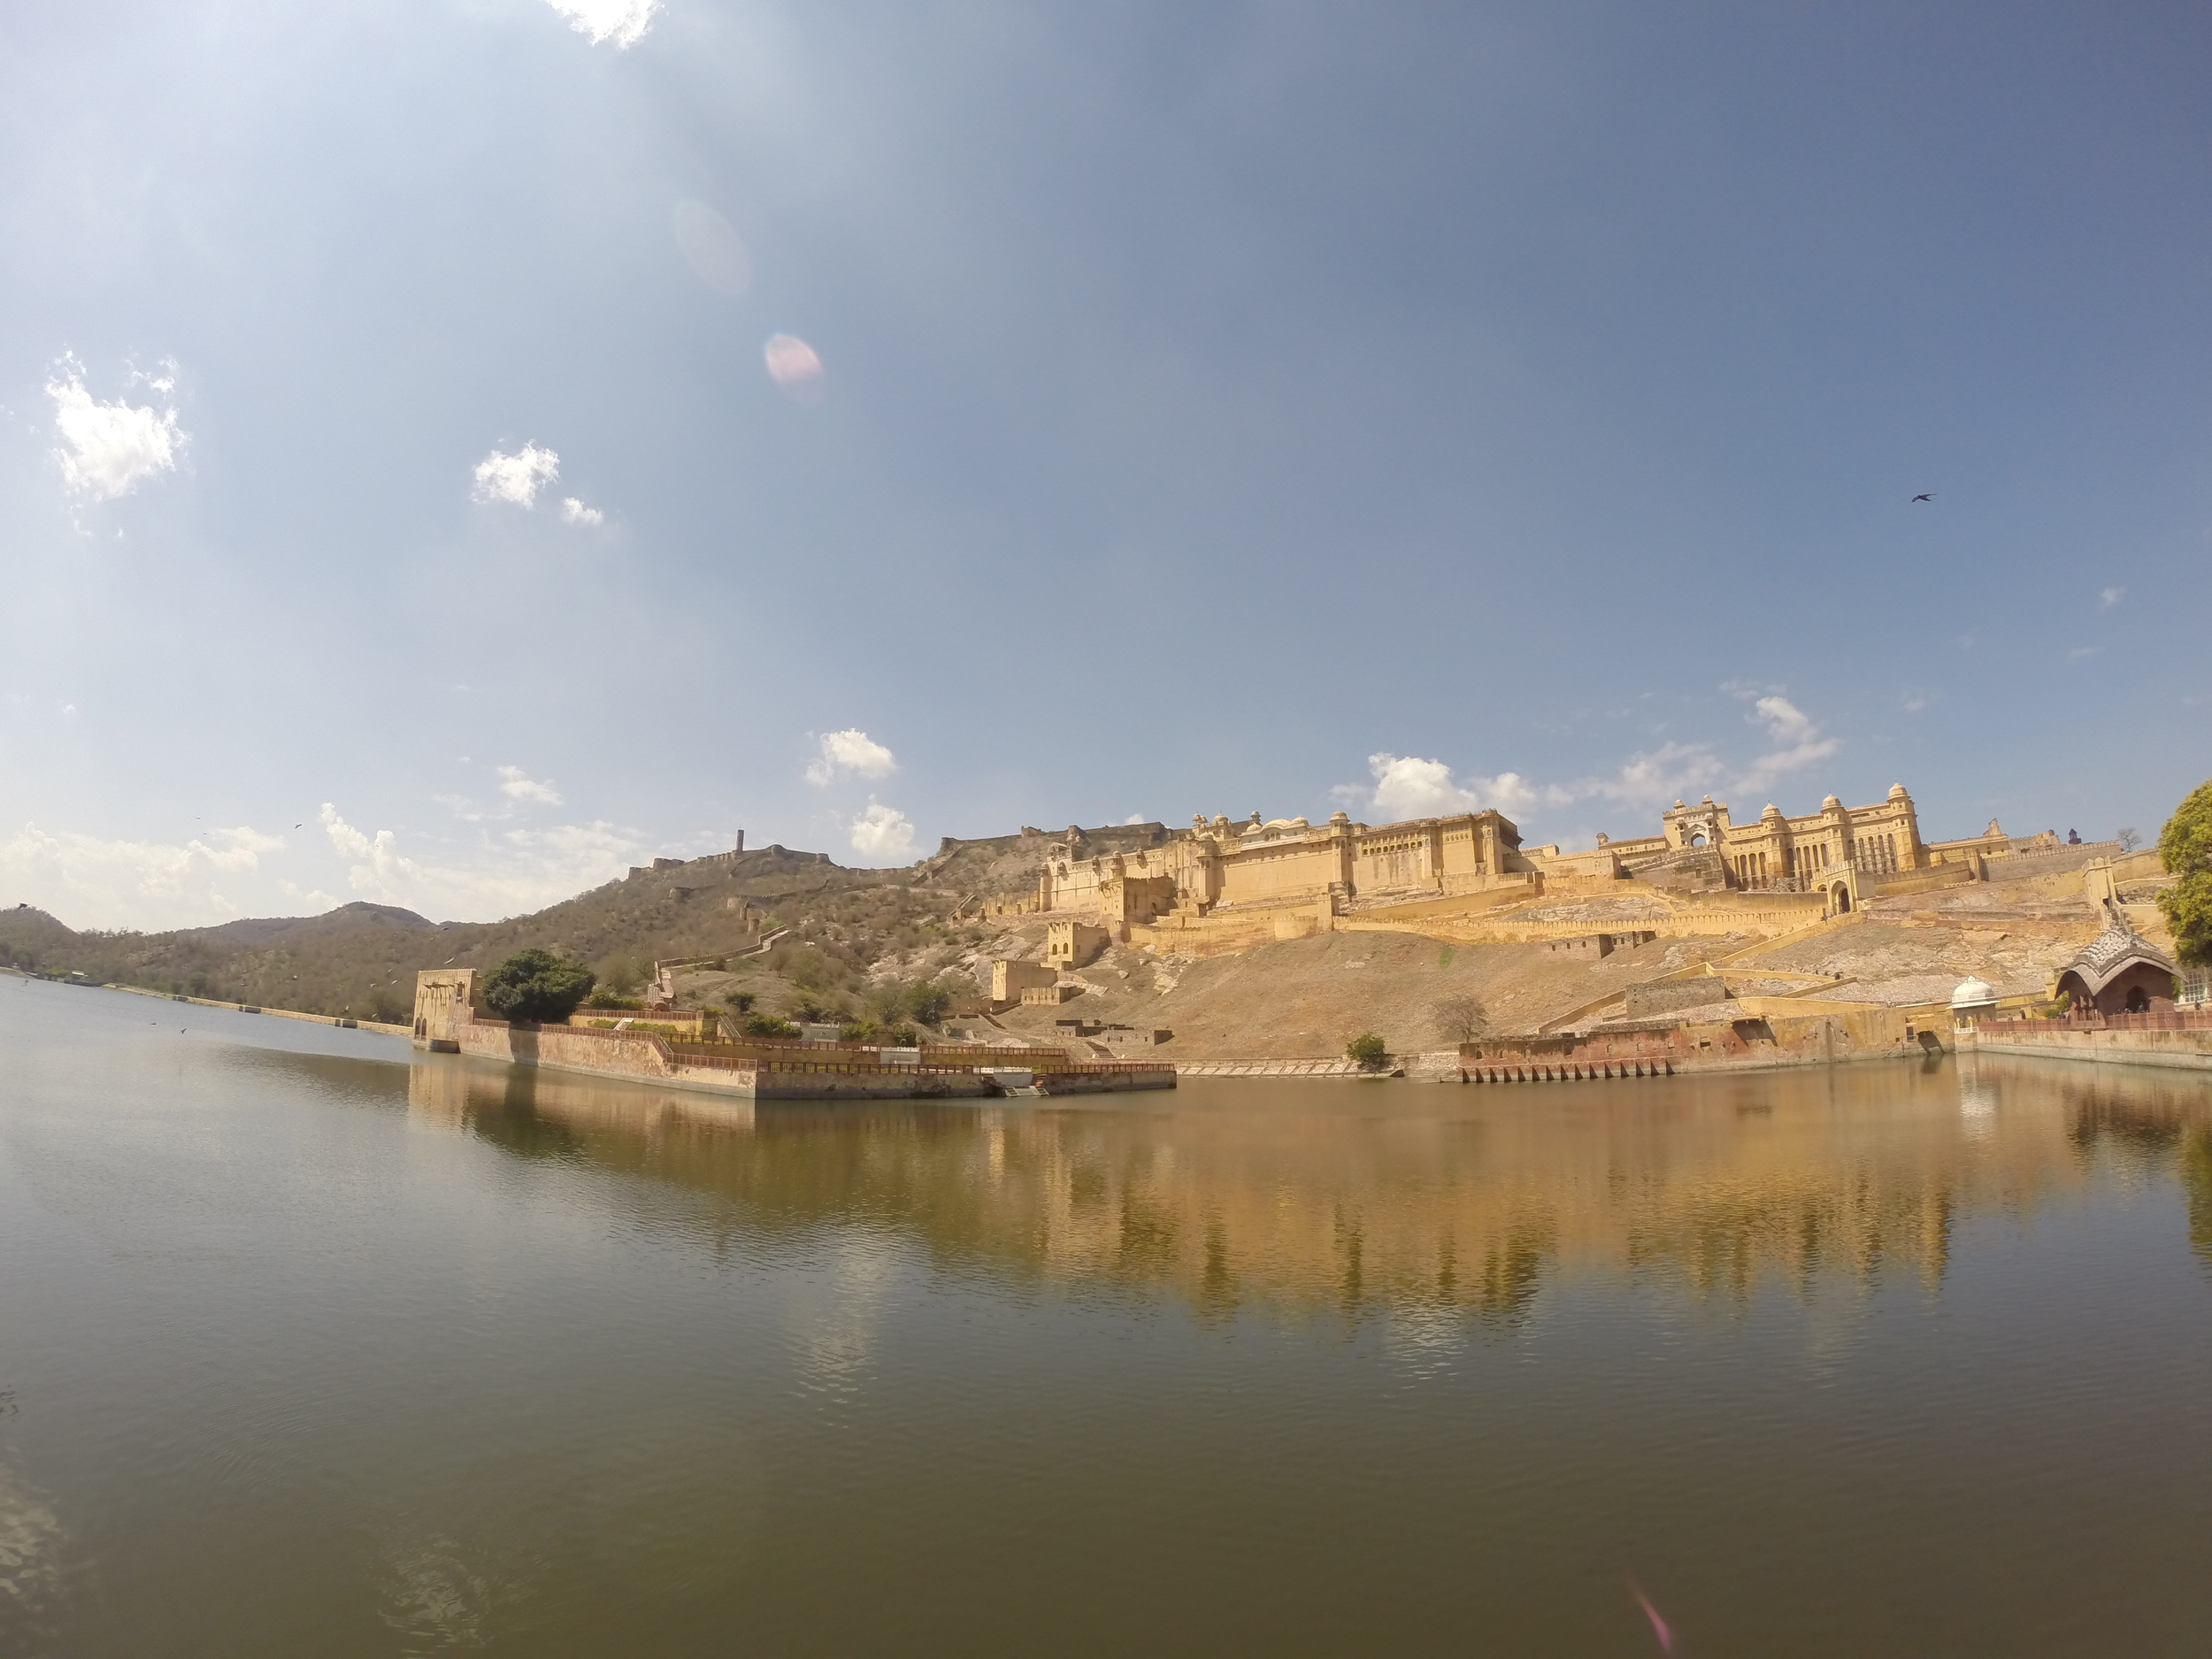 The Amer Fort outside of Jaipur.